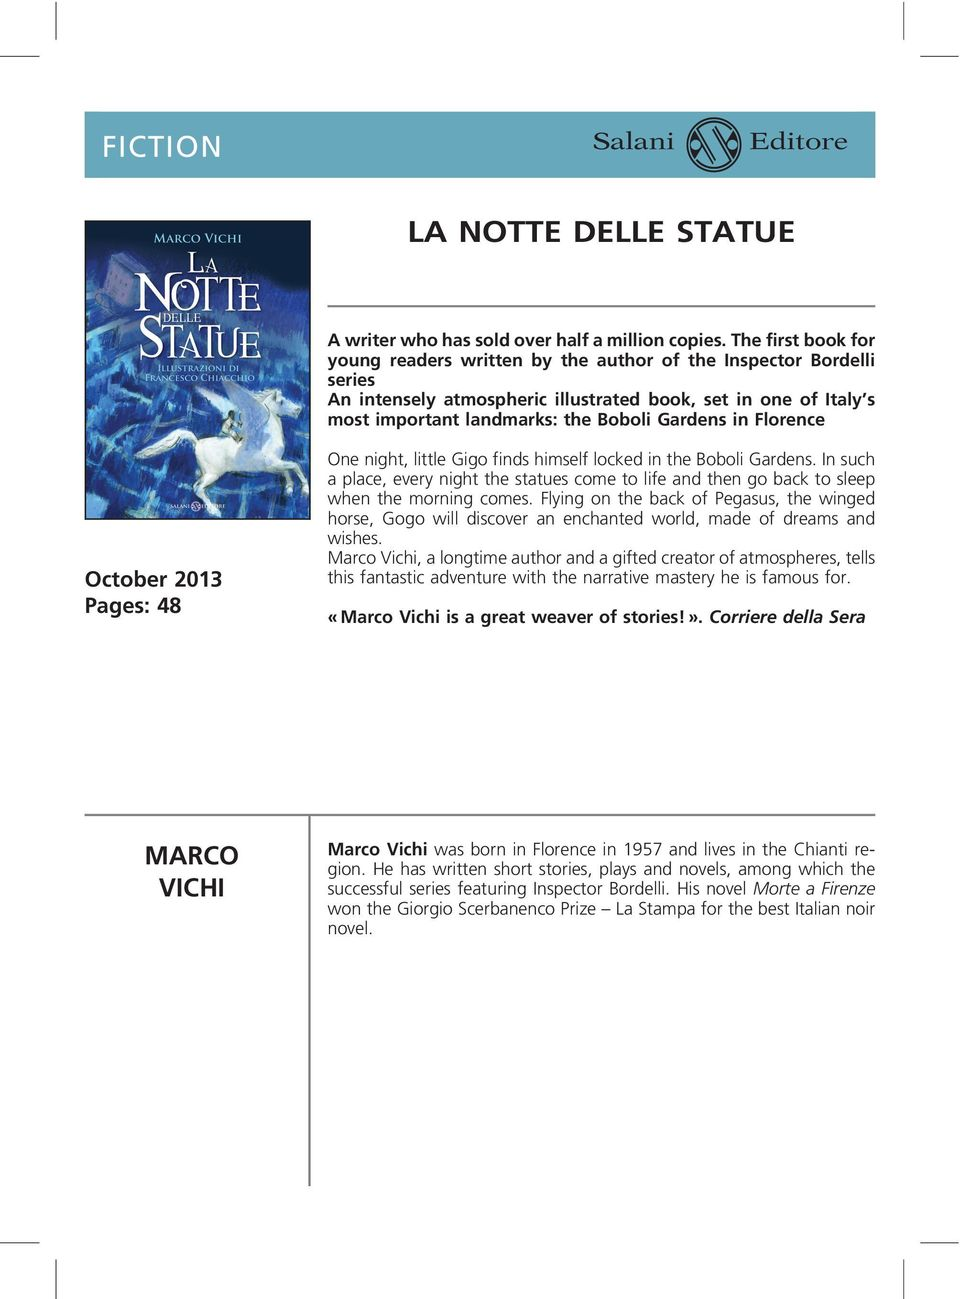 in Florence October 2013 Pages: 48 One night, little Gigo finds himself locked in the Boboli Gardens.